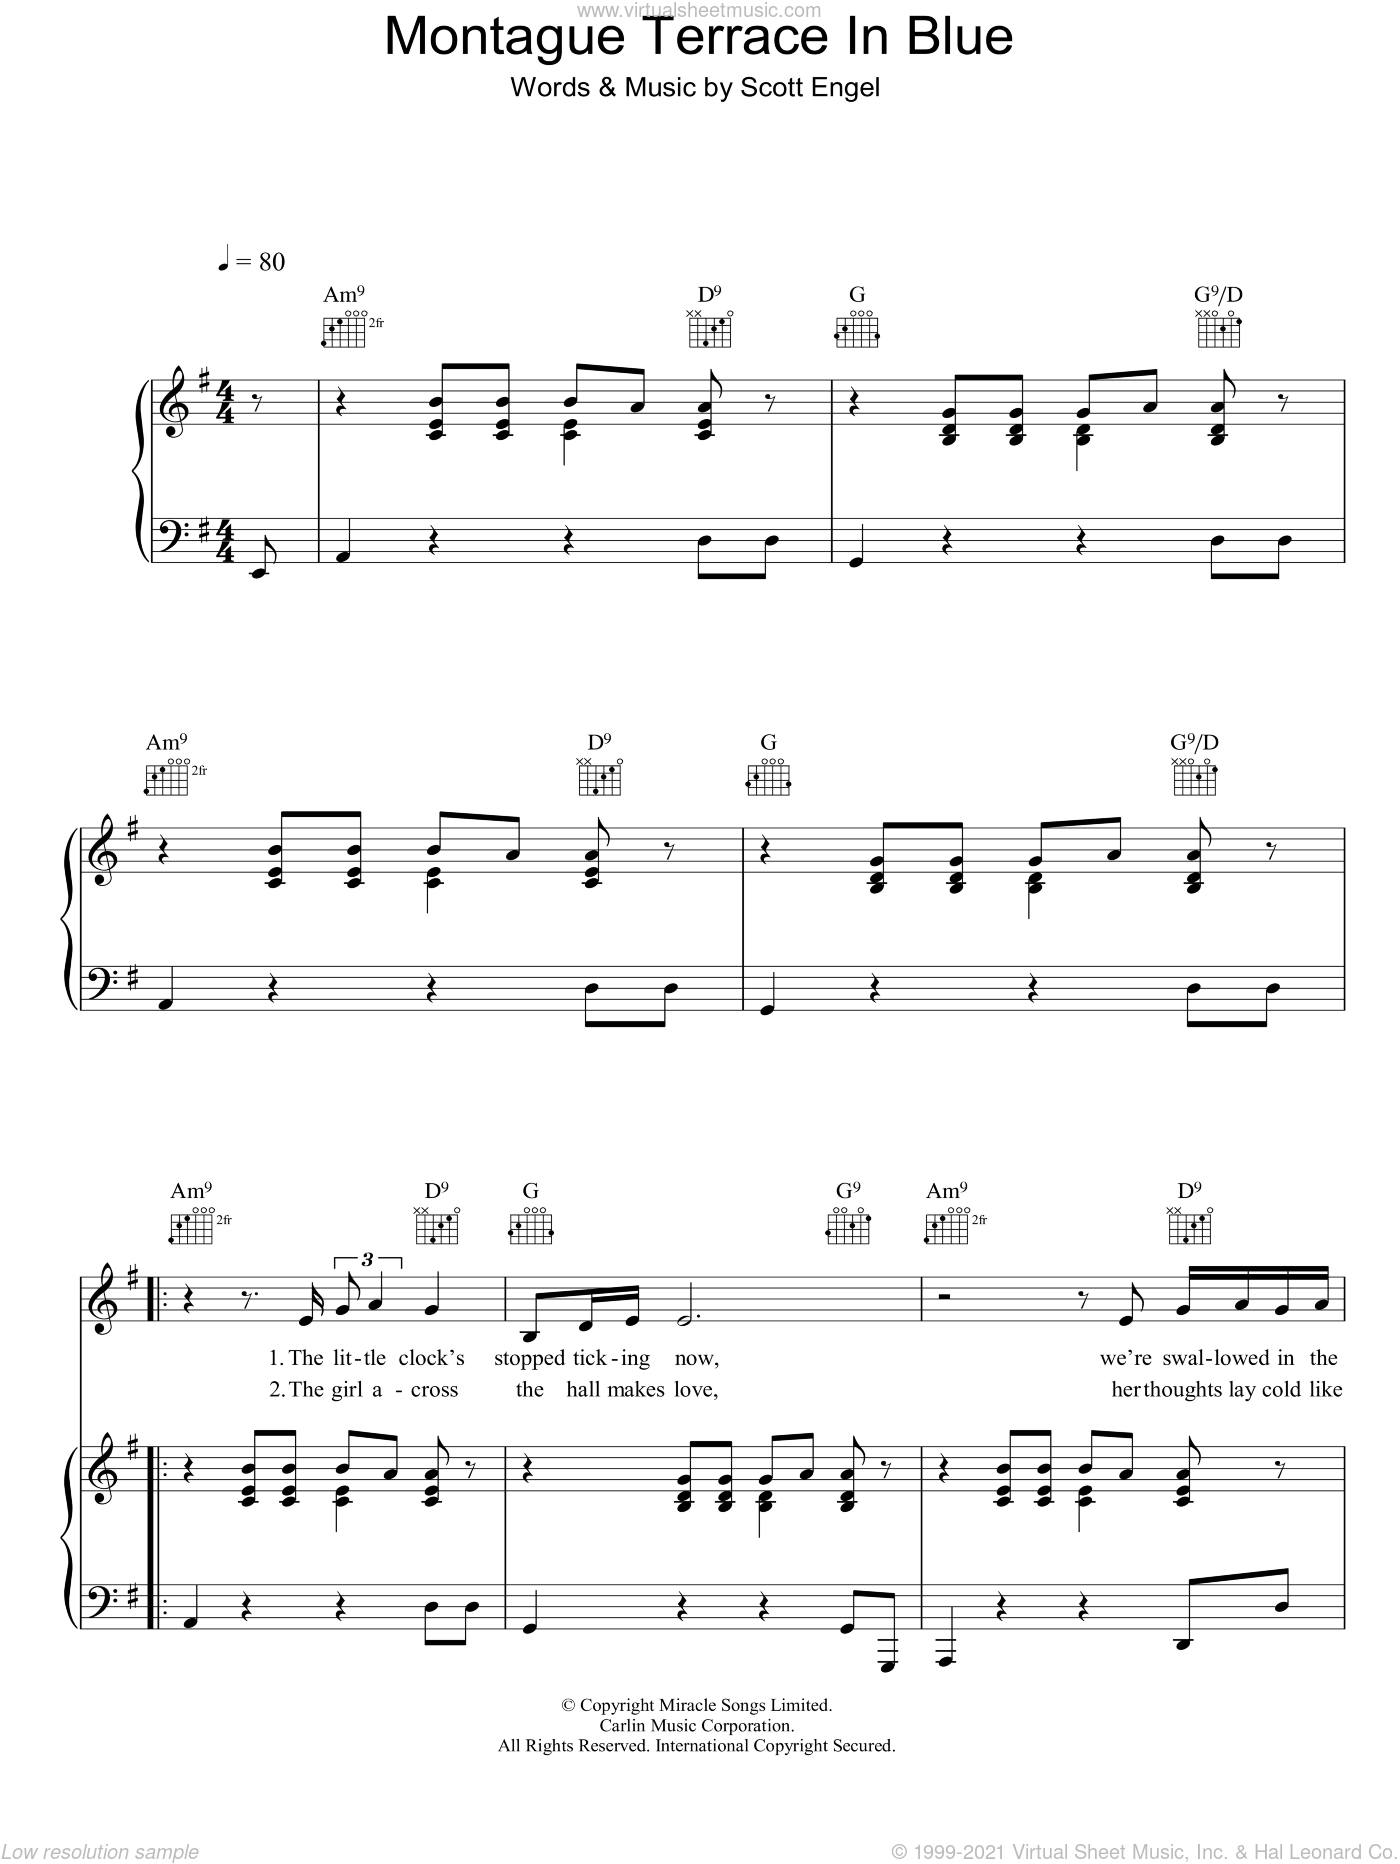 Montague Terrace In Blue sheet music for voice, piano or guitar by Scott Engel and Scott Walker